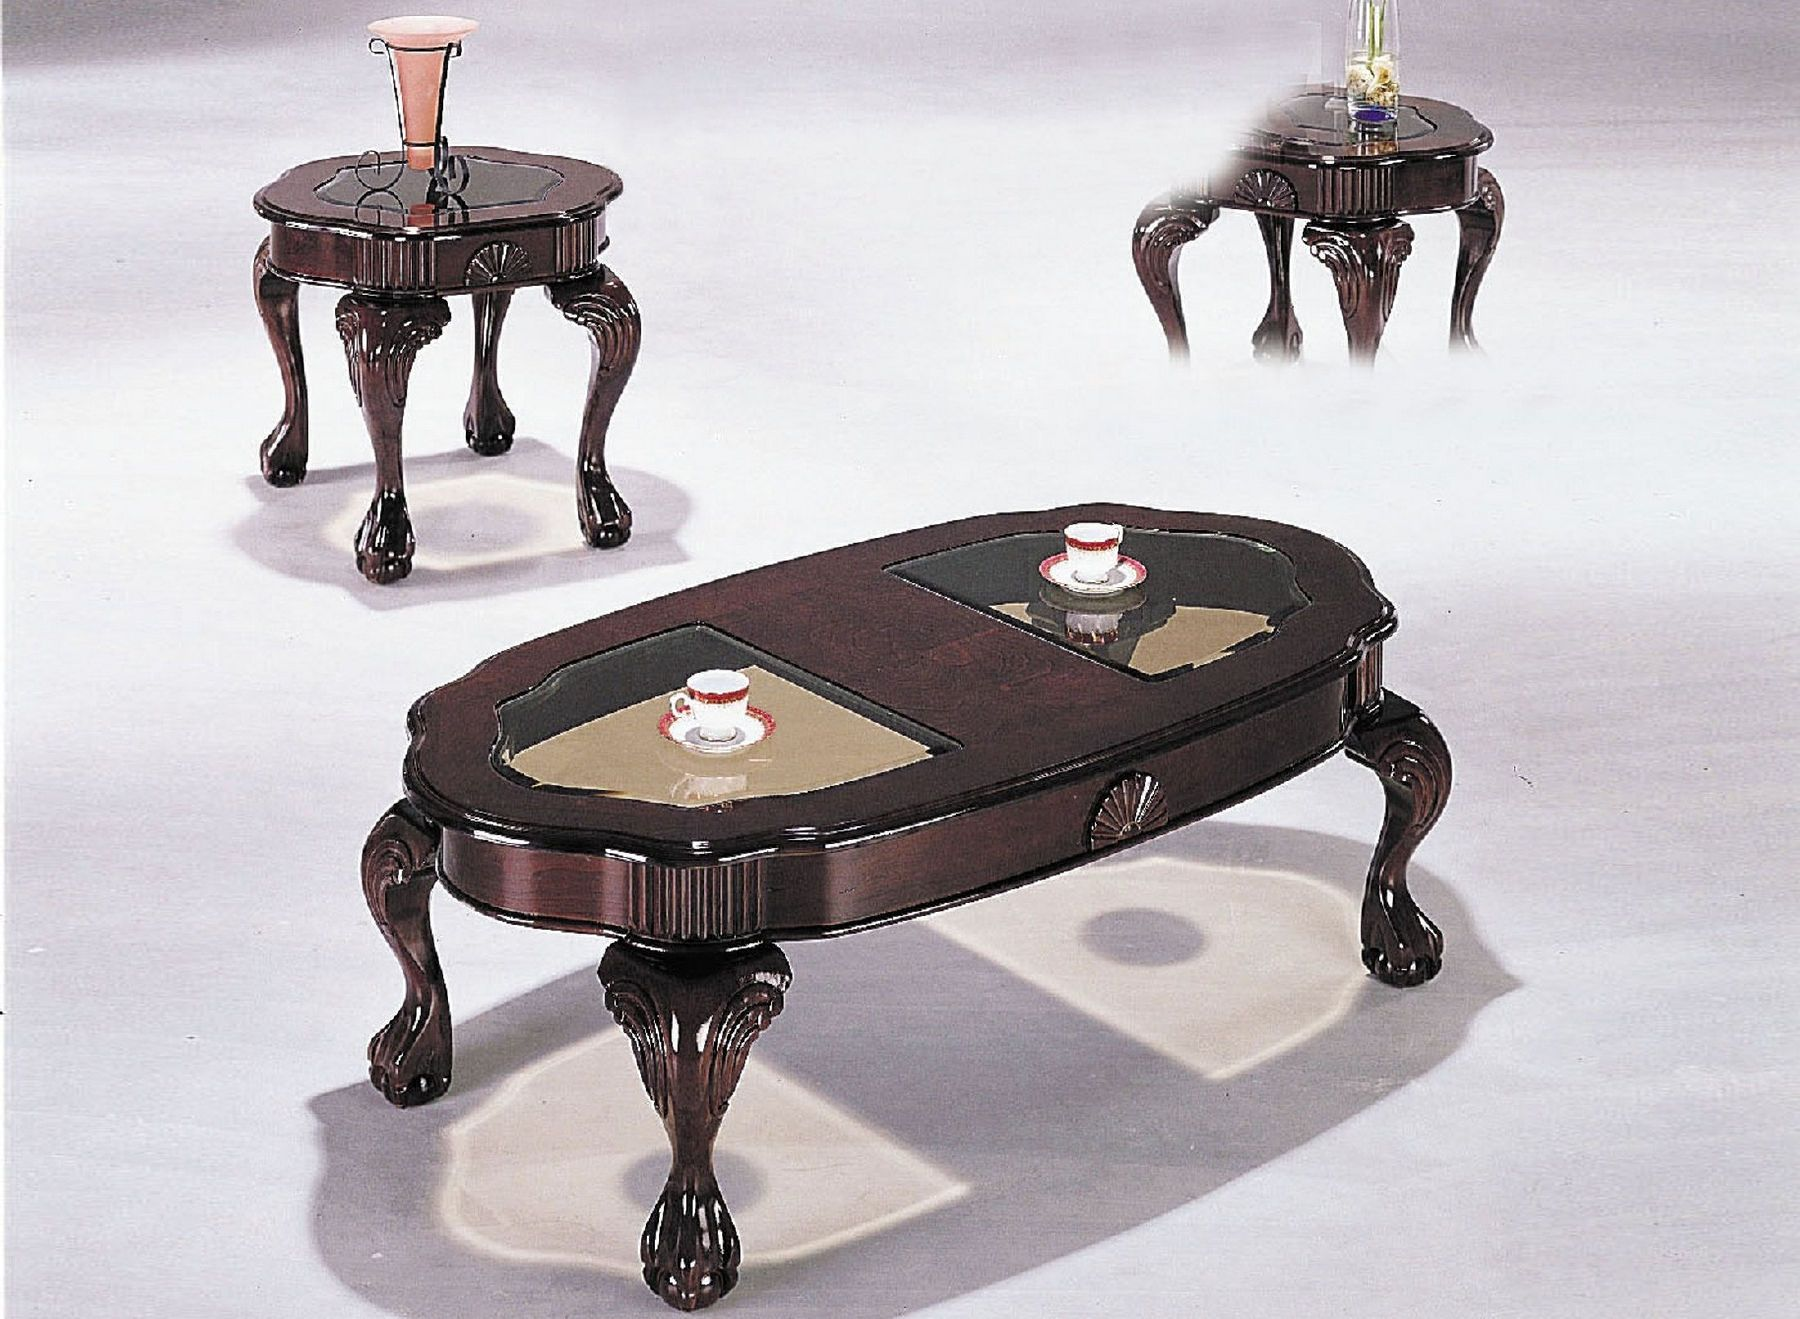 Canebury Coffee Table 2 End Tables 08195 Acme Corporation Coffee Tables Coffee Table Glass Top Coffee Table Glass Top Coffee Table Set [ 1319 x 1800 Pixel ]